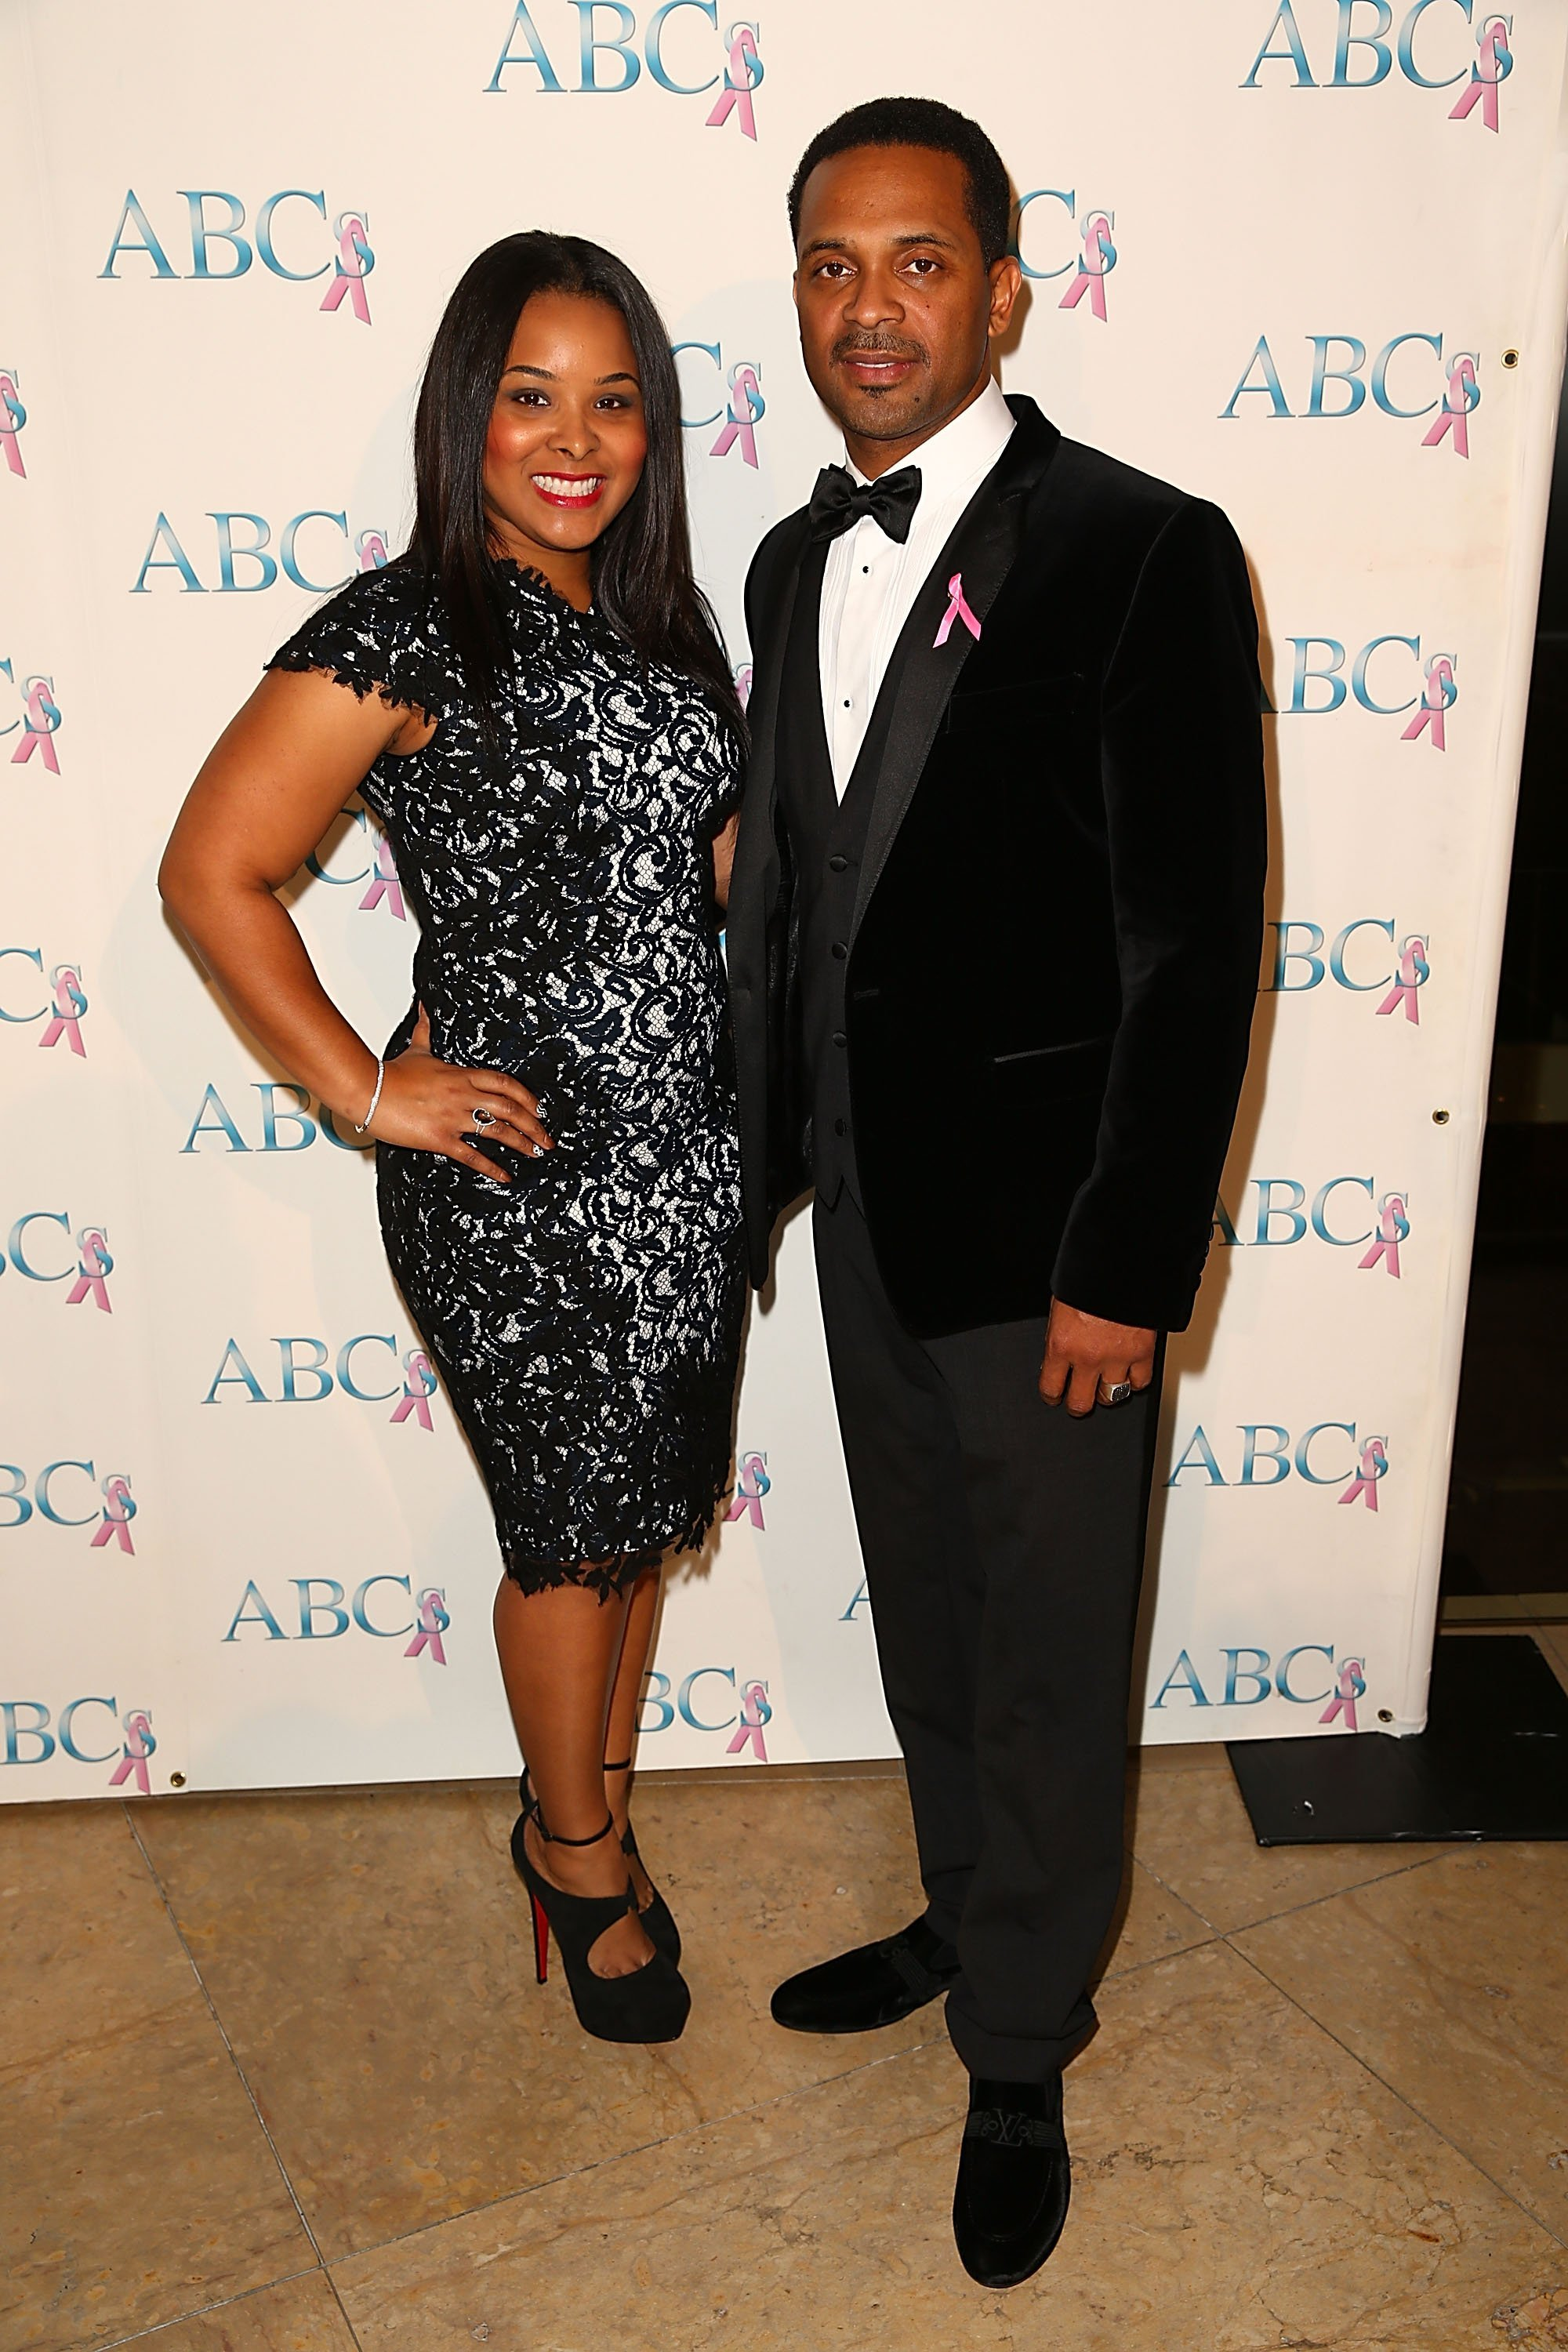 Mike Epps & Mechelle McCain at The Beverly Hilton Hotel in California on Nov. 23, 2013. | Photo: Getty Images